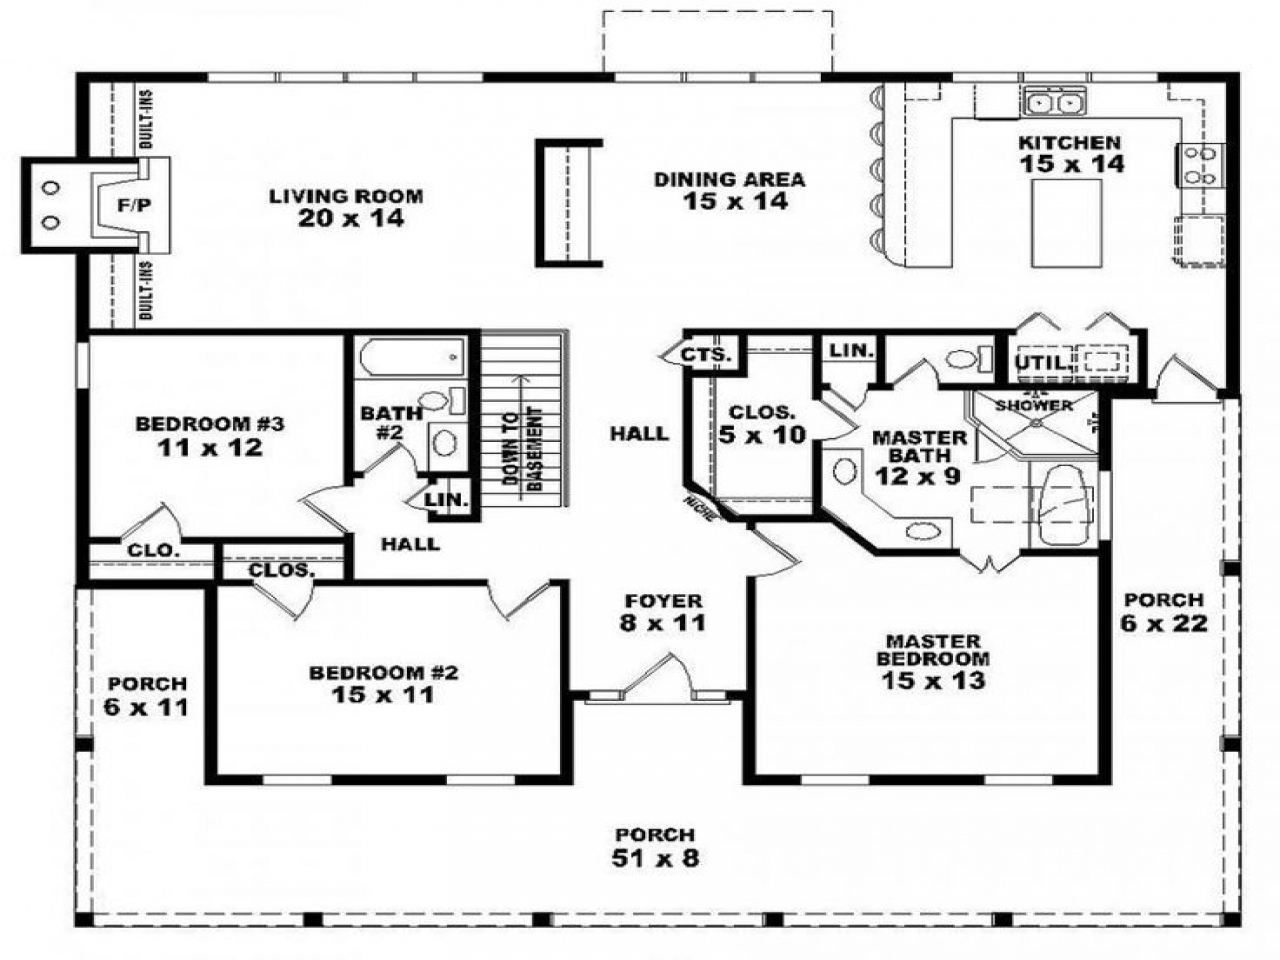 One story 3 bedroom 2 bath house plans 3 bedroom houses for 3 story 5 bedroom house plans